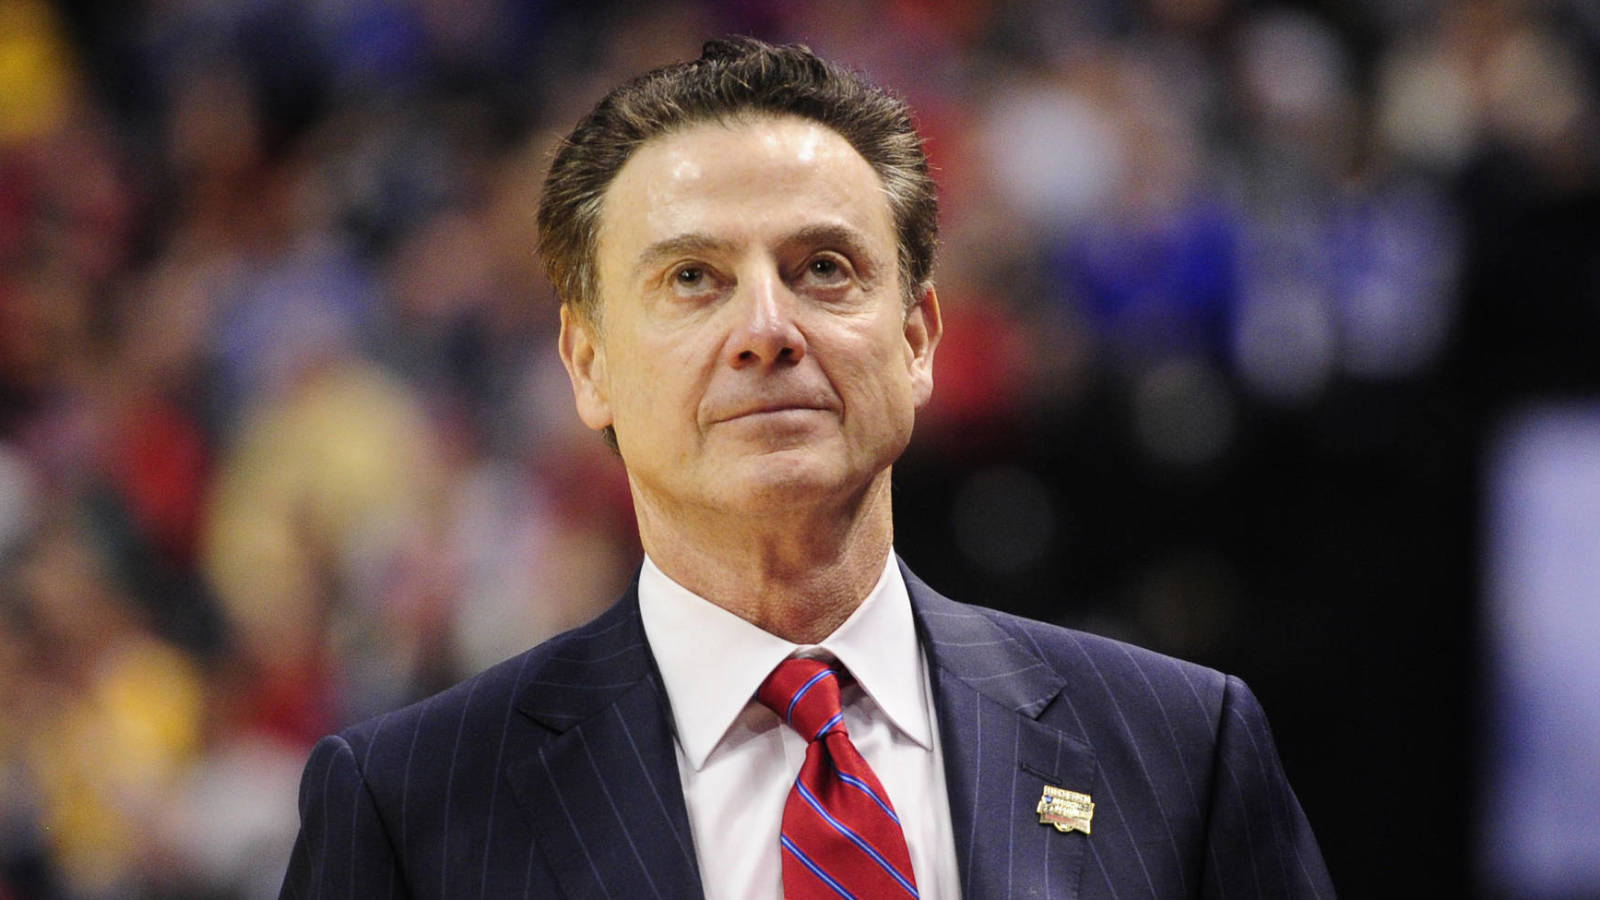 Rick Pitino: 2020 CBB season should start in January with only league games